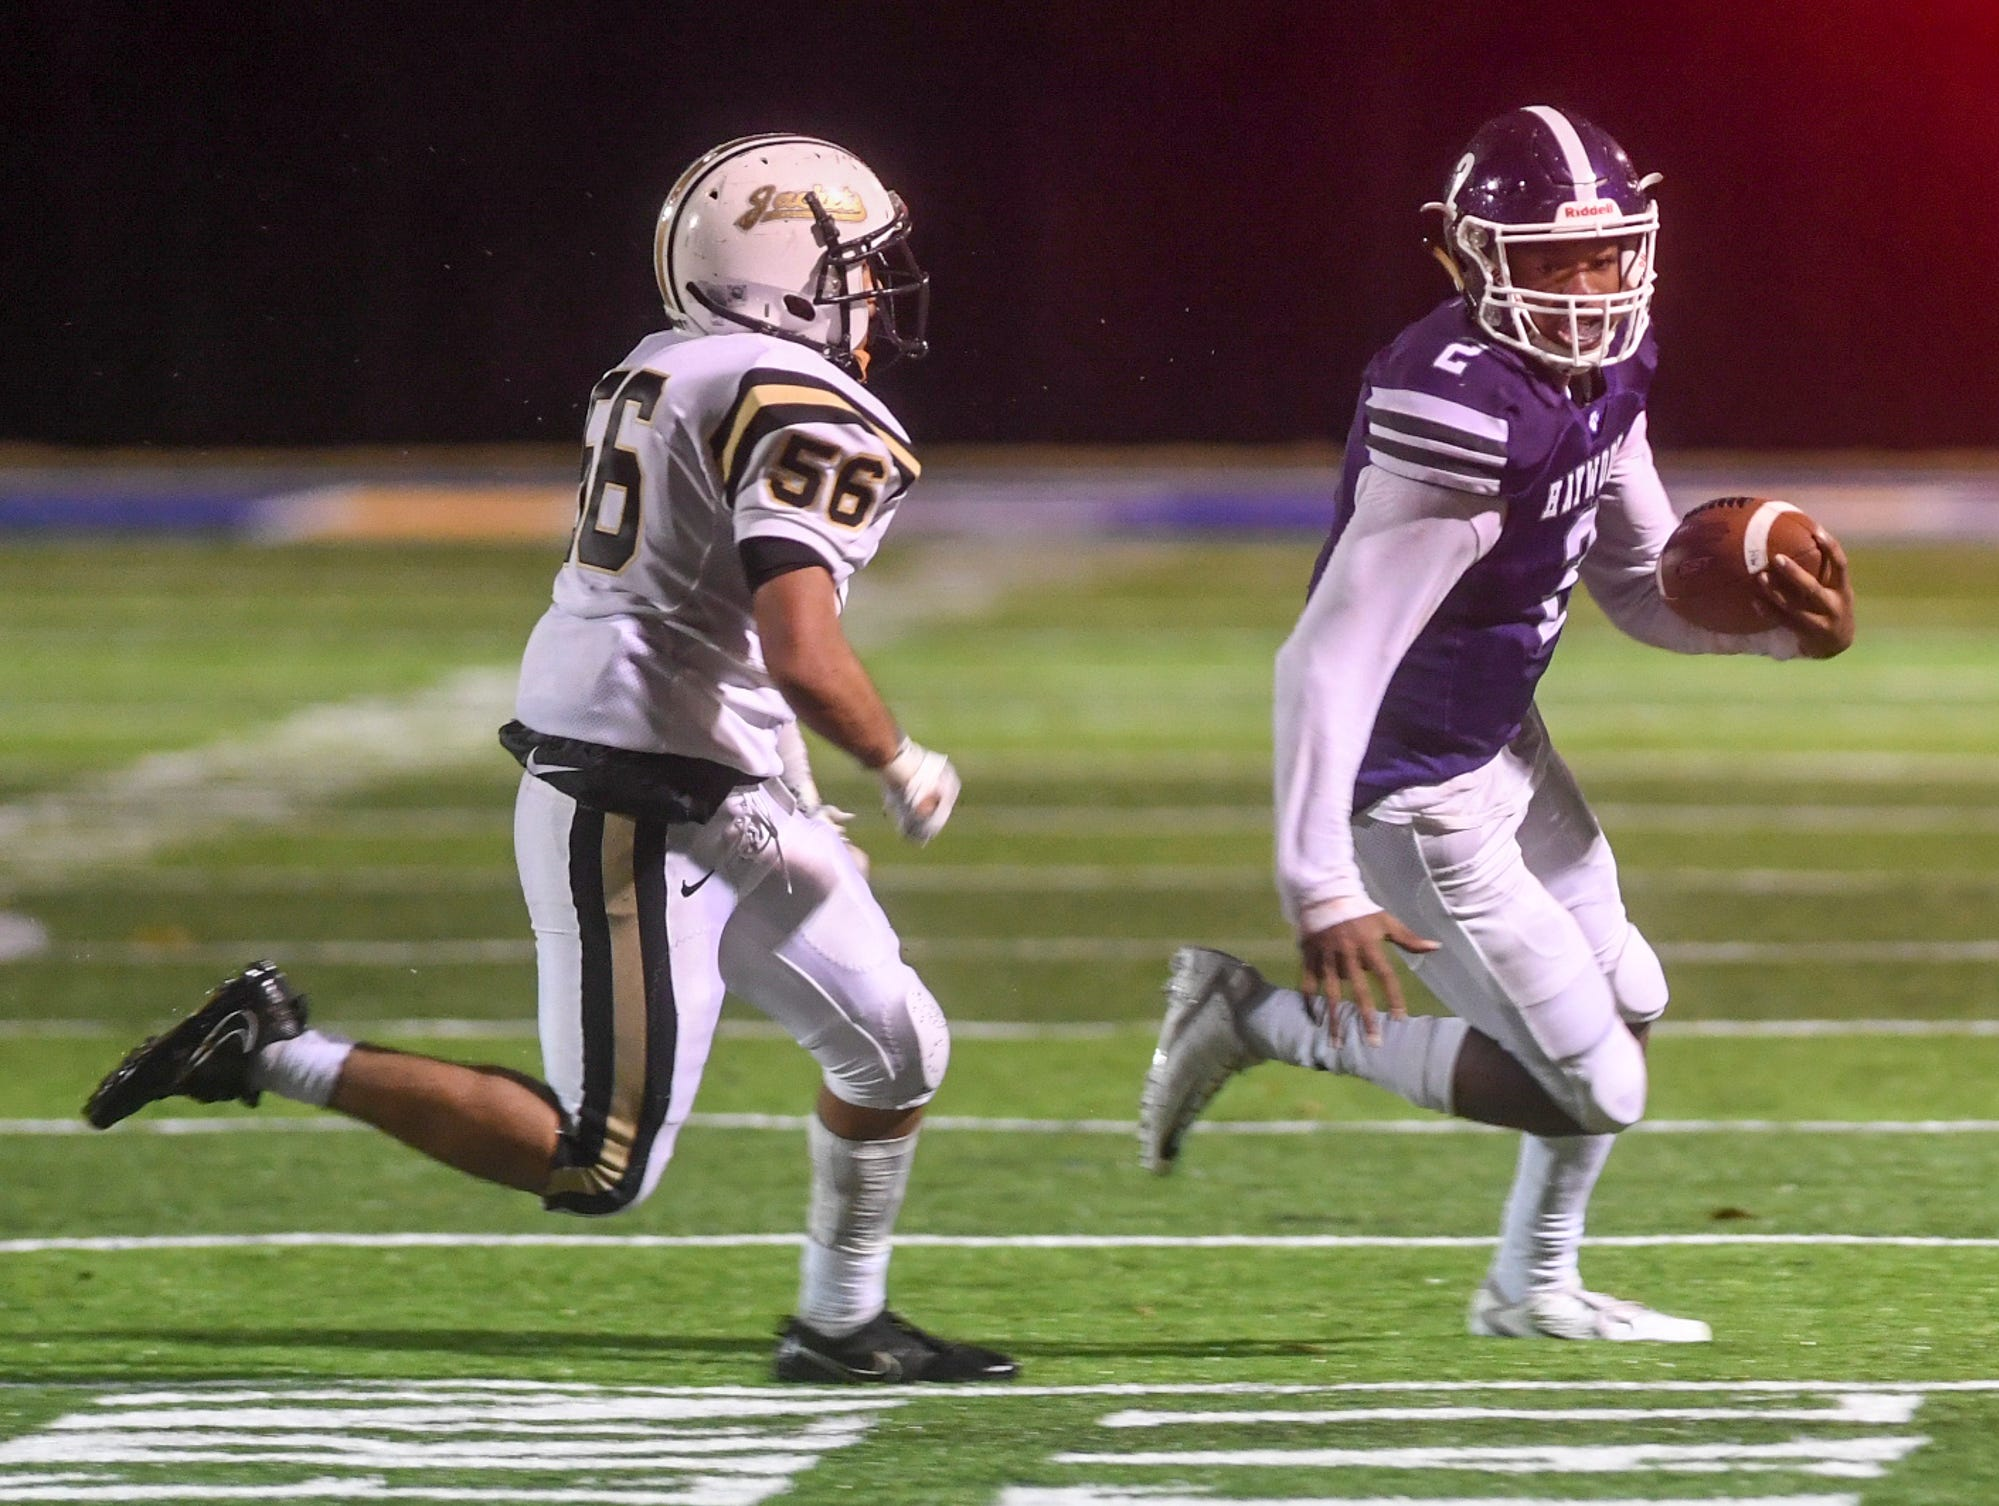 Haywood's Deyondrius Hines runs away from Travarion Kendrick during their Class 4A semifinal game, Friday, November 23. Haywood defeated Springfield, 49-14.